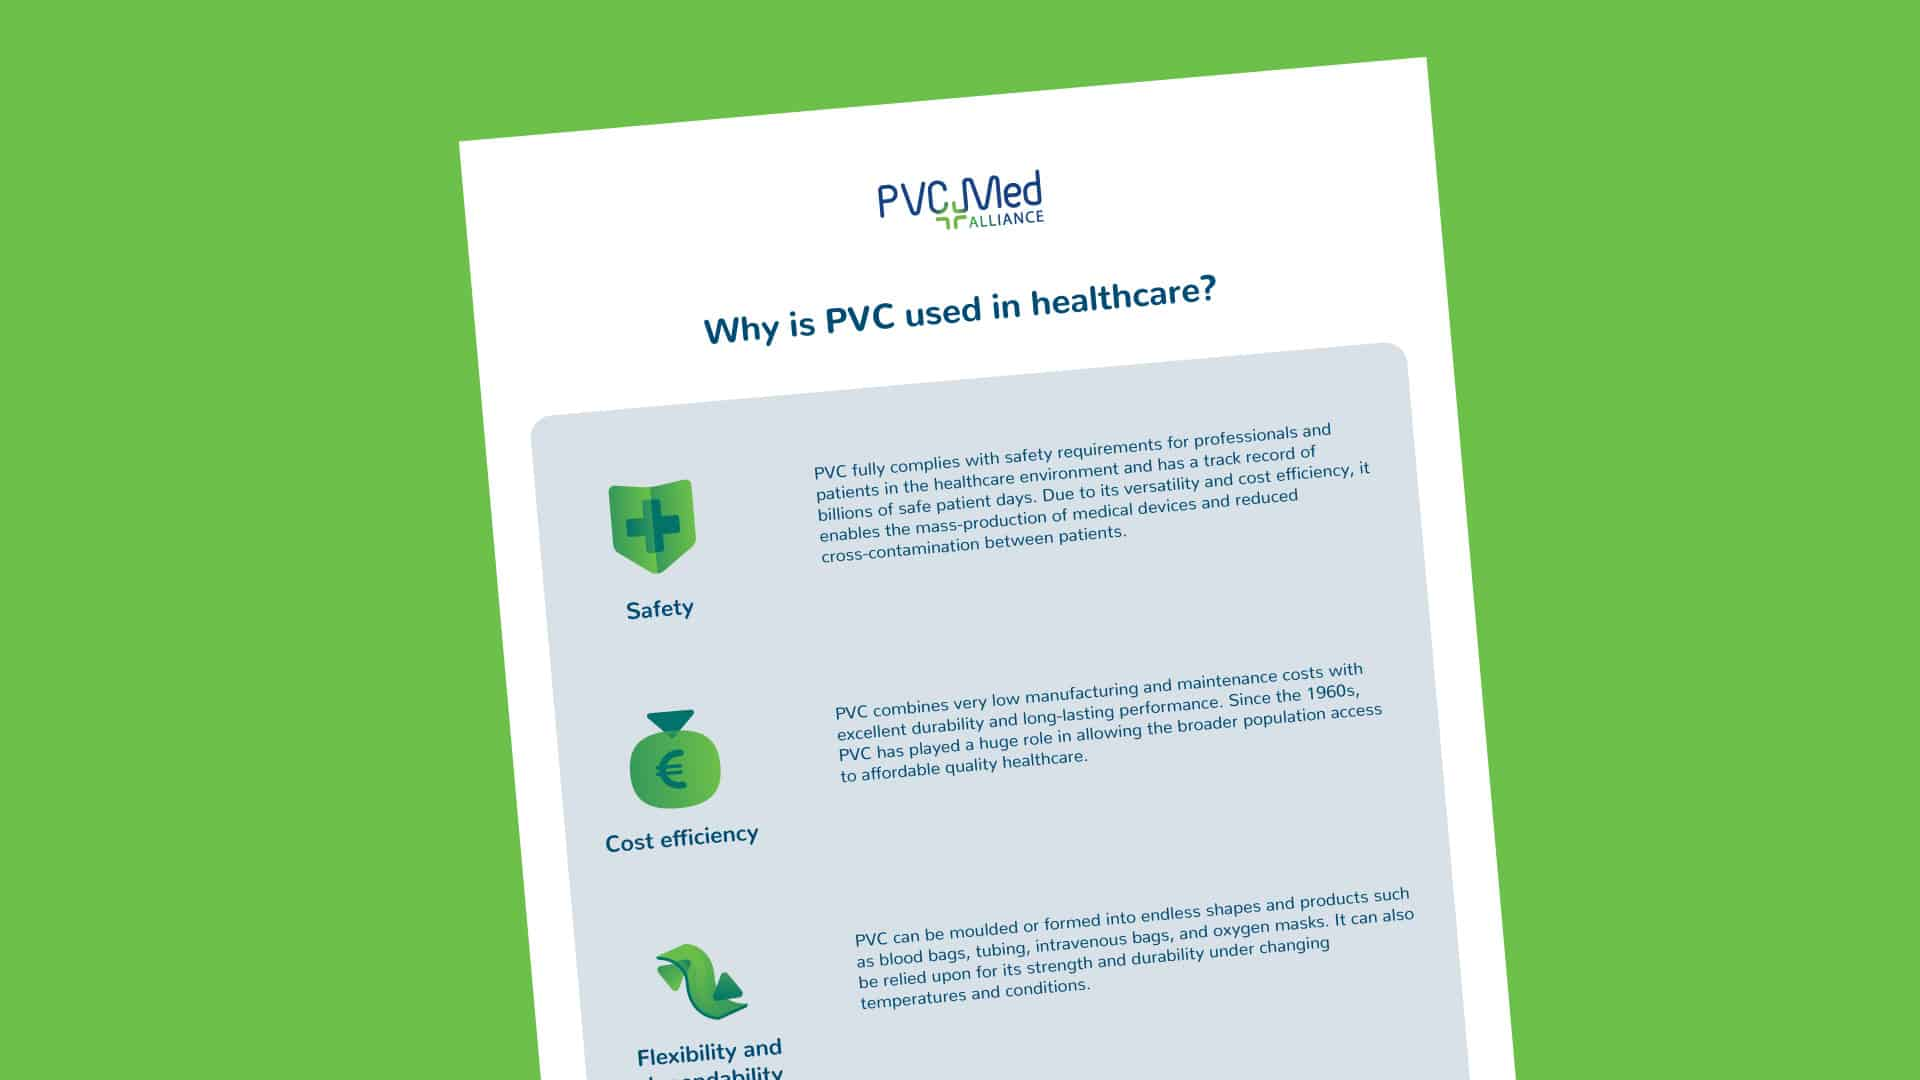 why-is-pvc-used-in-healthcare-green_bg